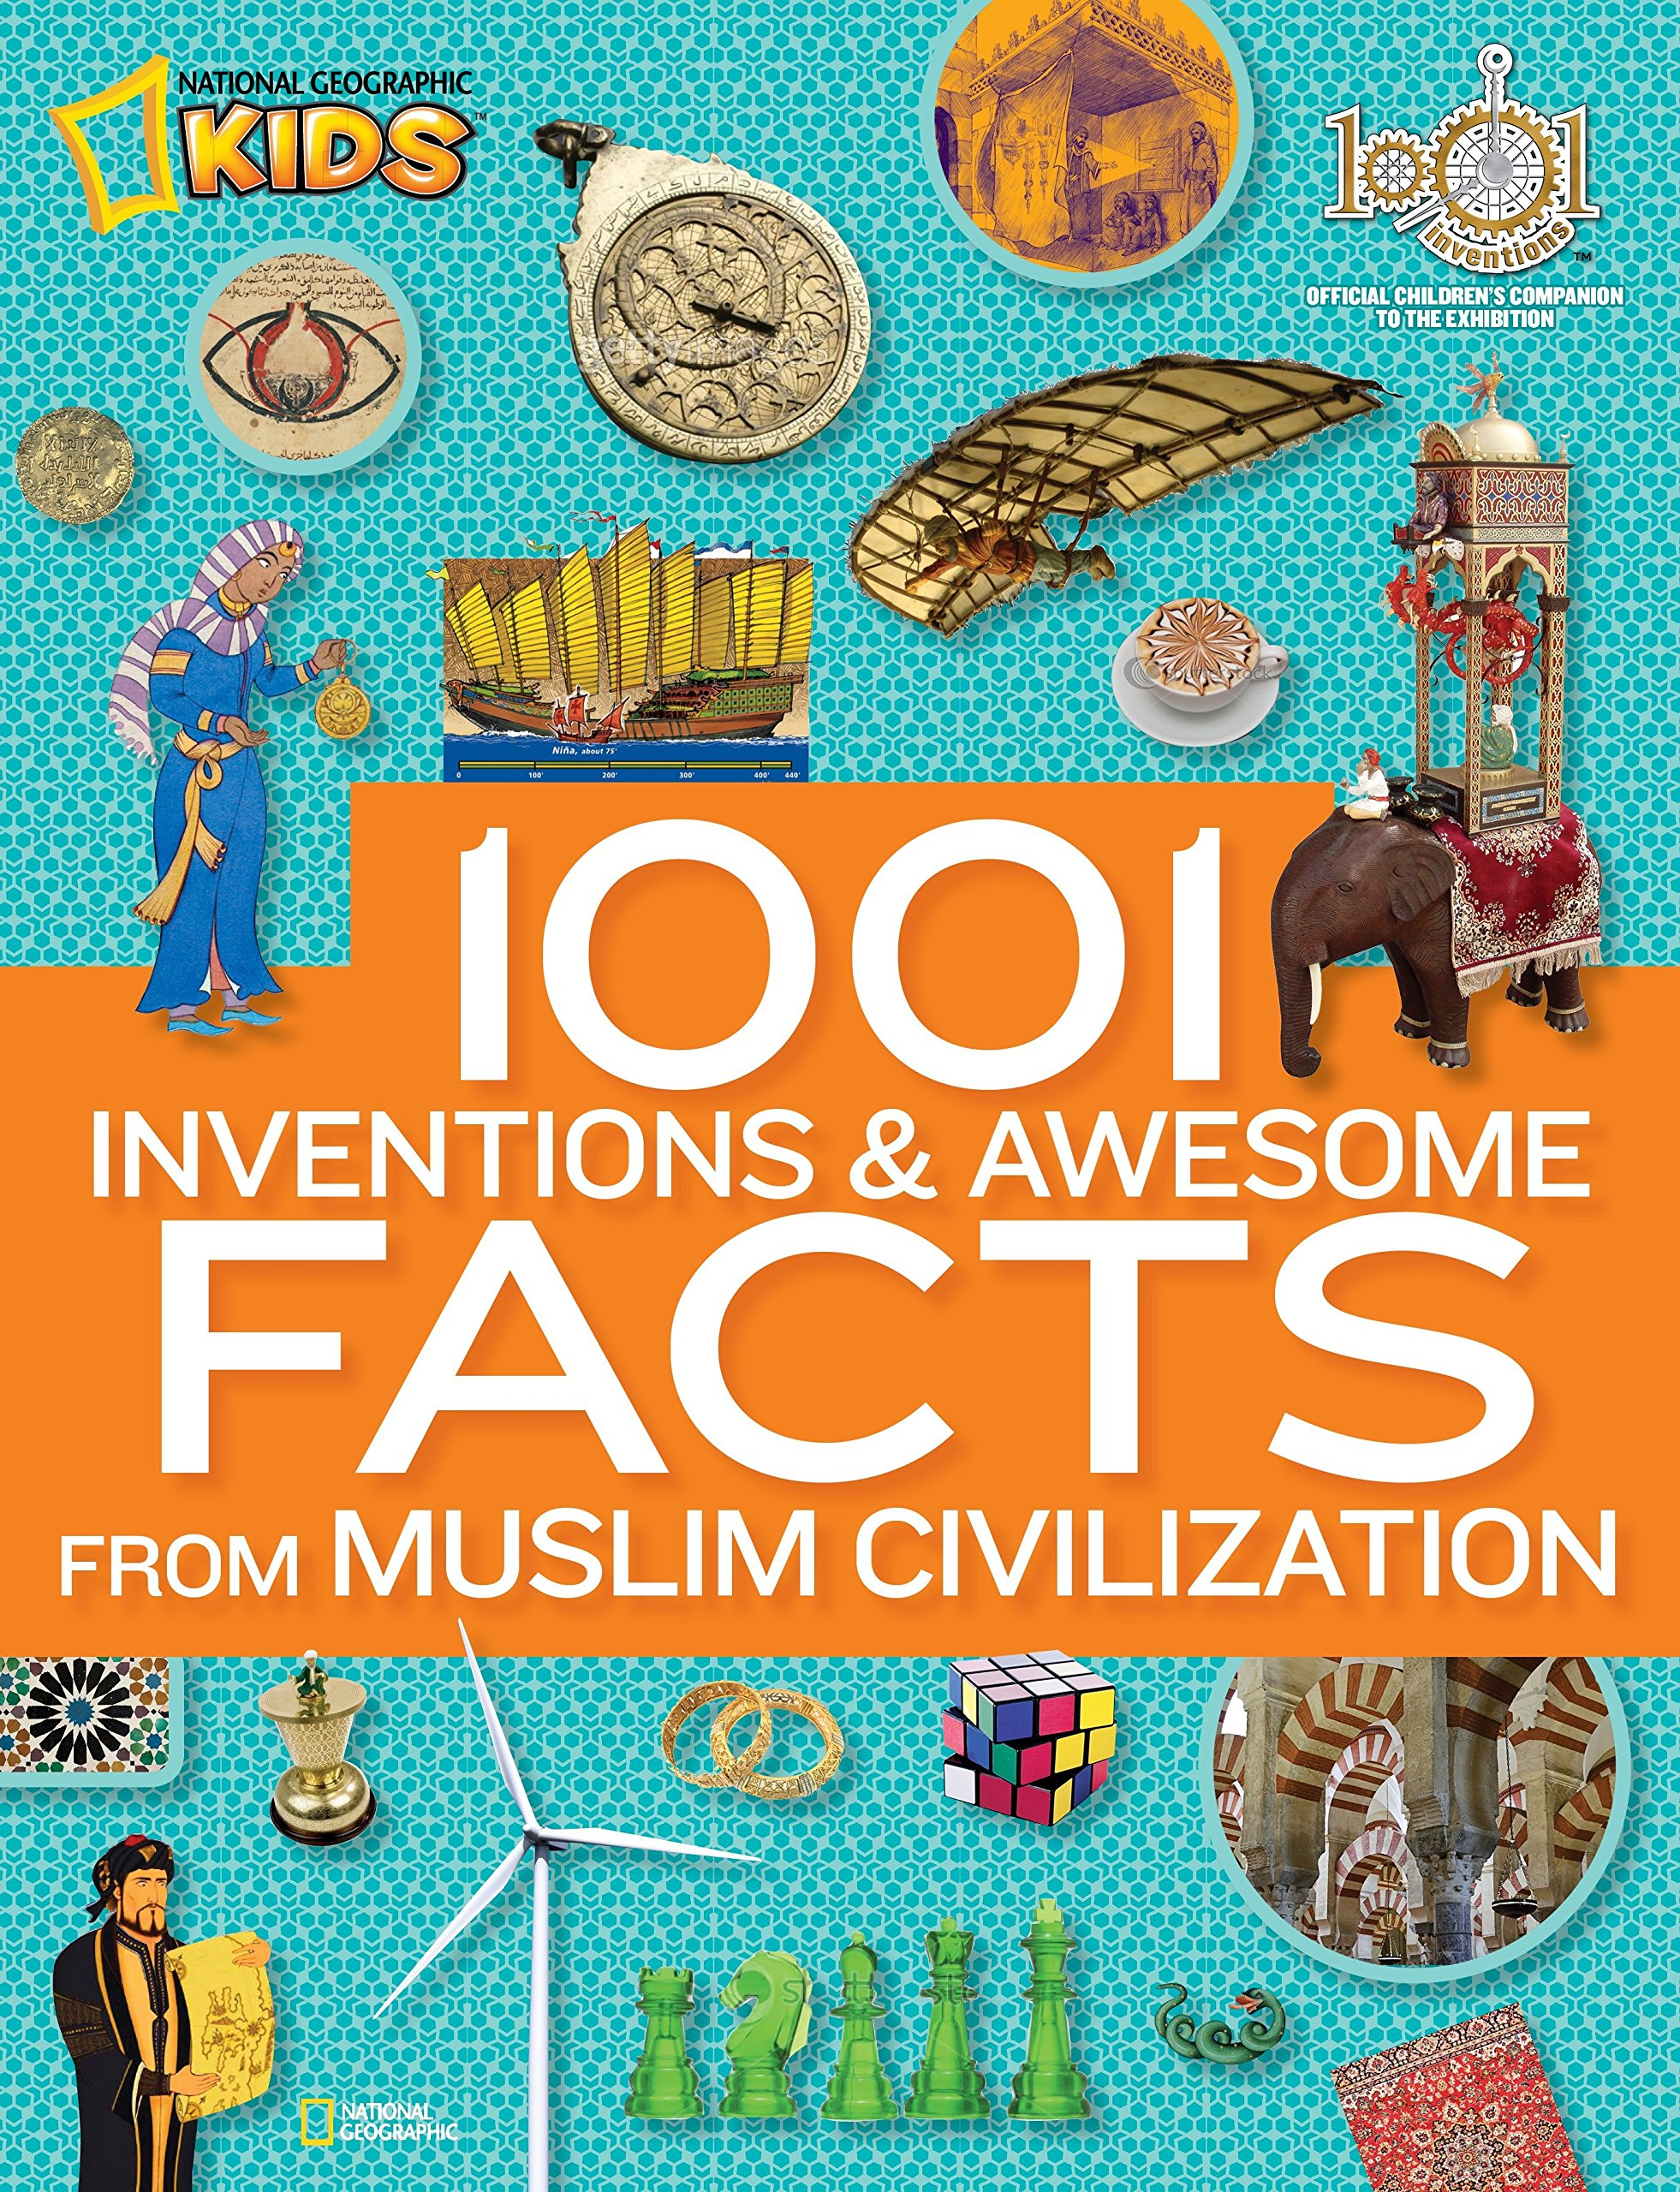 1001 Inventions and Awesome Facts from Muslim Civilization: Official  Children's Companion to the 1001 Inventions Exhibition (National Geographic  Kids): ...